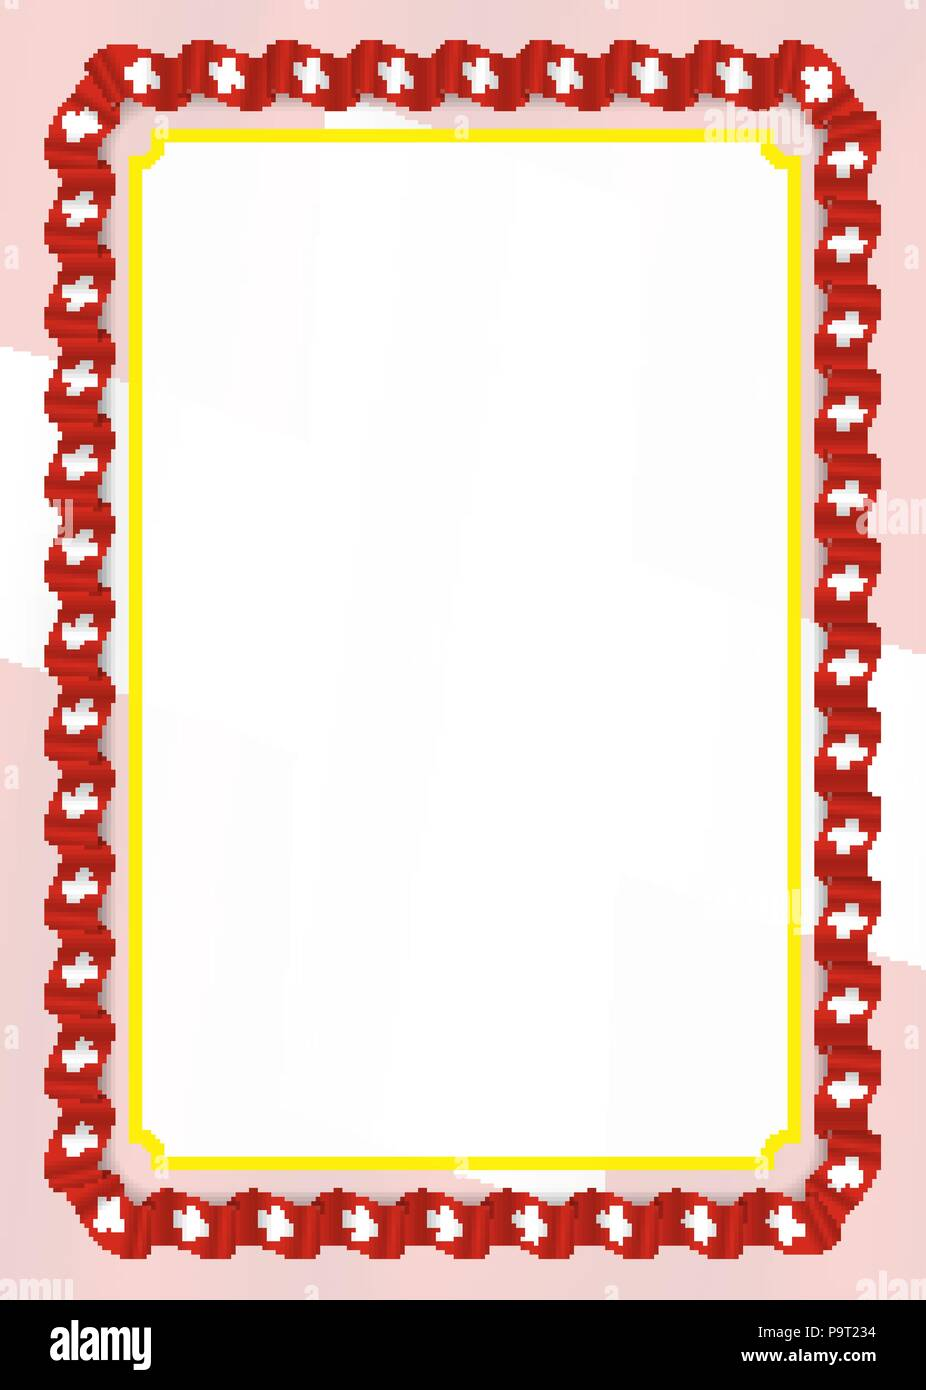 frame and border of ribbon with switzerland flag template elements